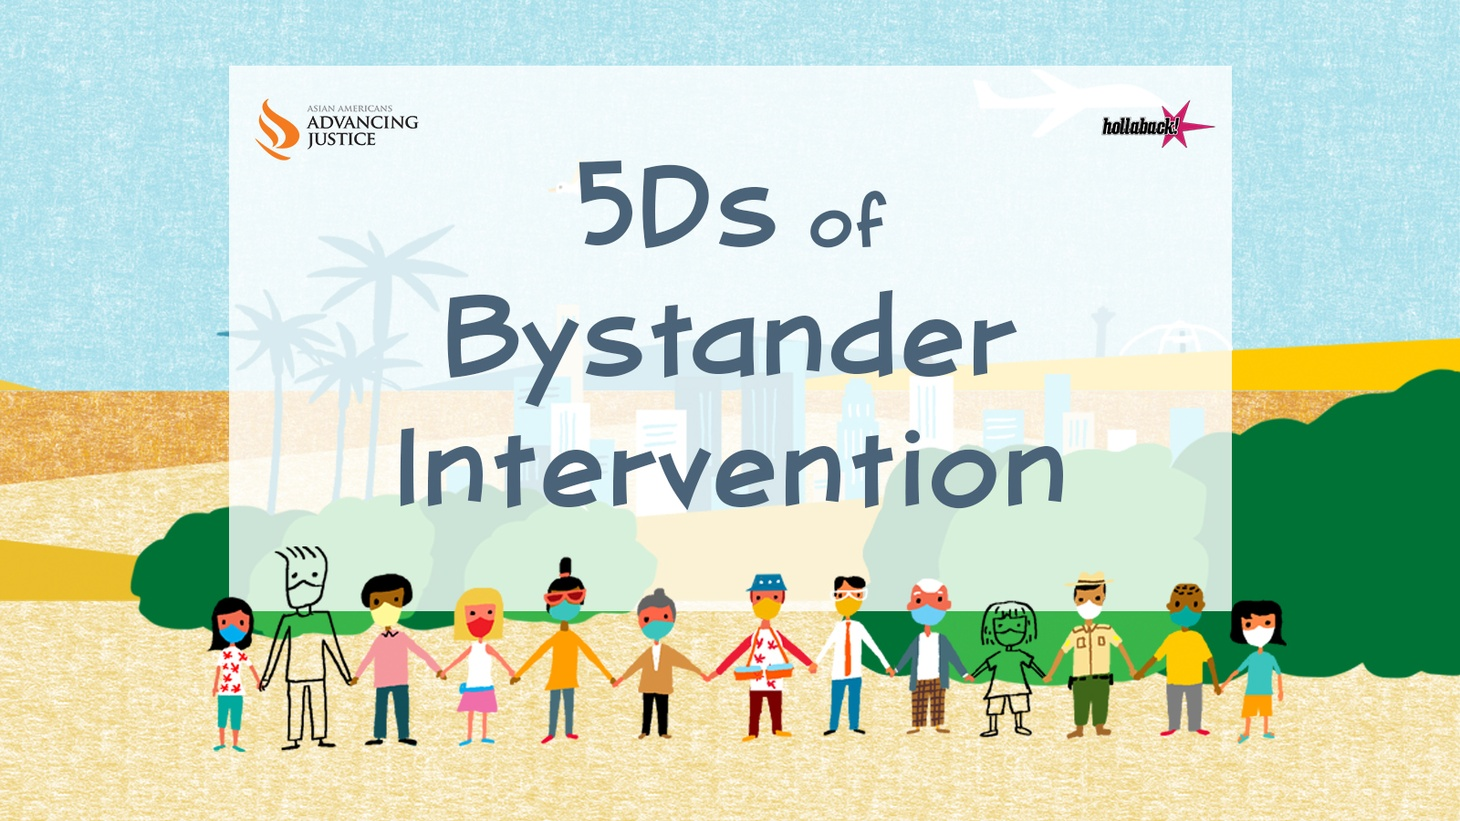 Learn how to intervene as a bystander.